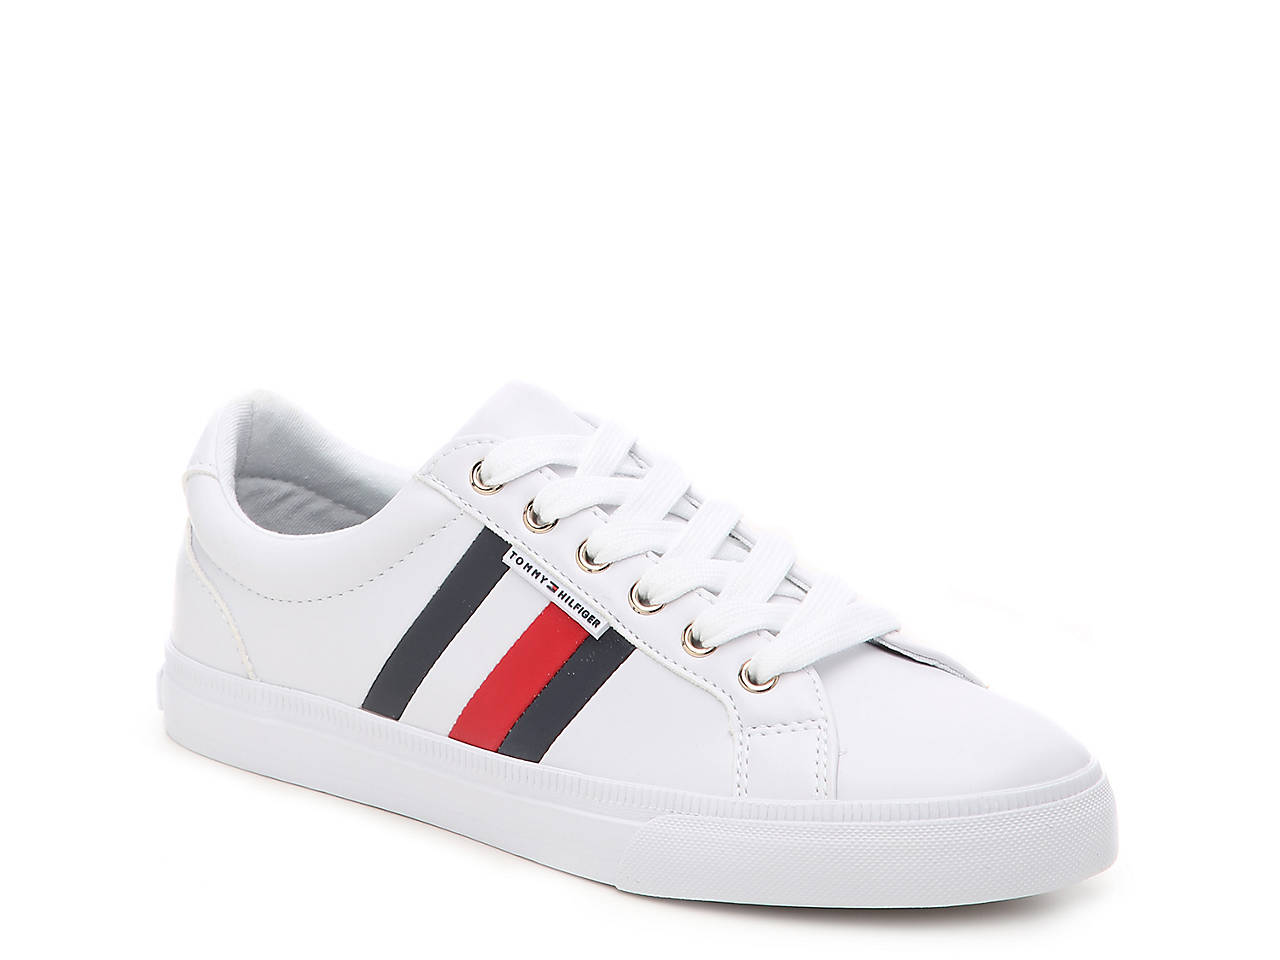 6adf869f1 Tommy Hilfiger Lightz Sneaker Women s Shoes